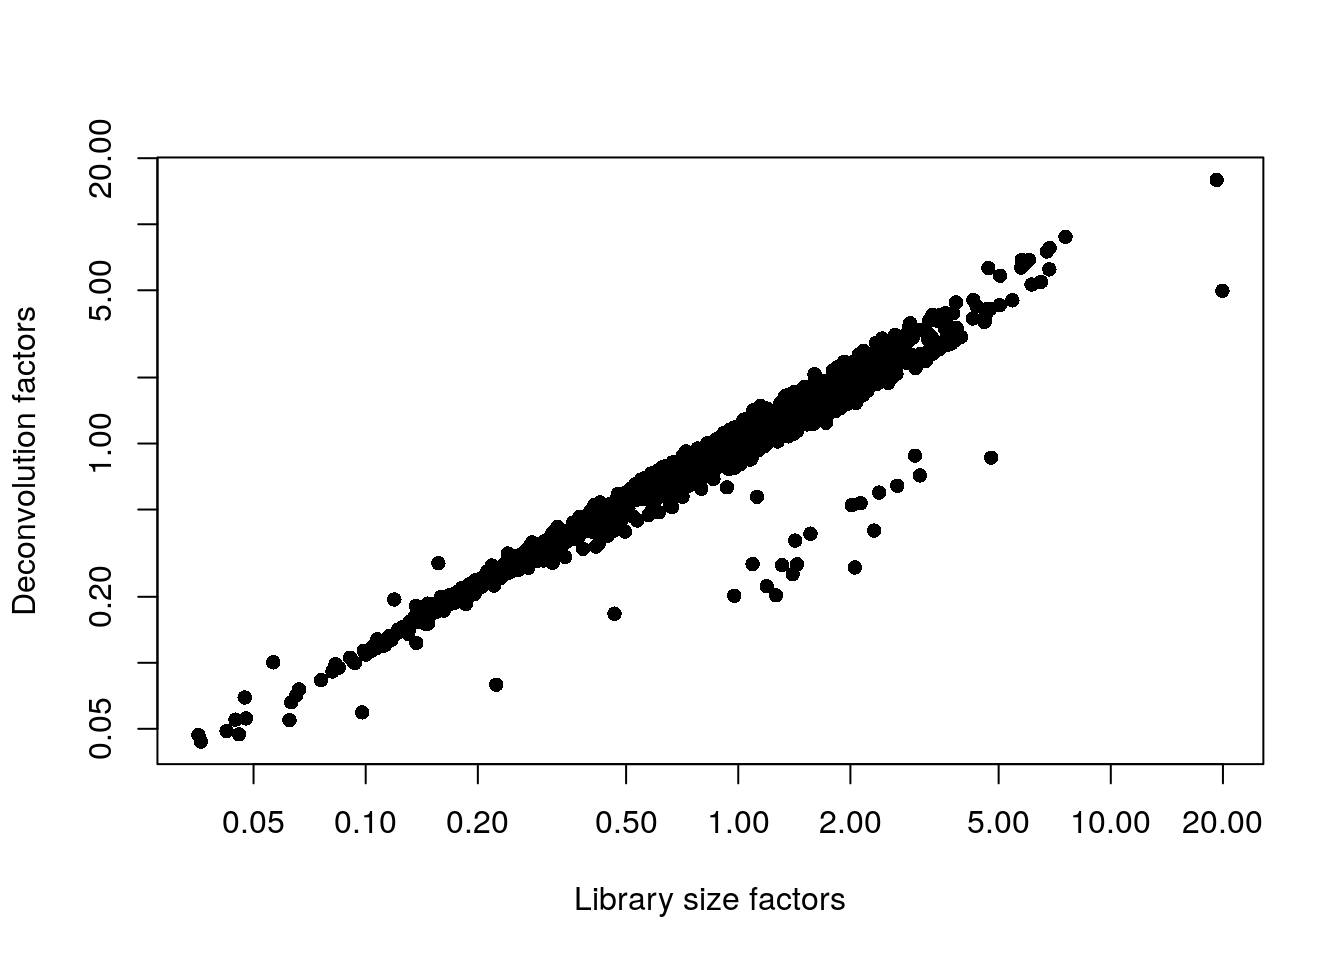 Relationship between the library size factors and the deconvolution size factors in the Nestorowa HSC dataset.